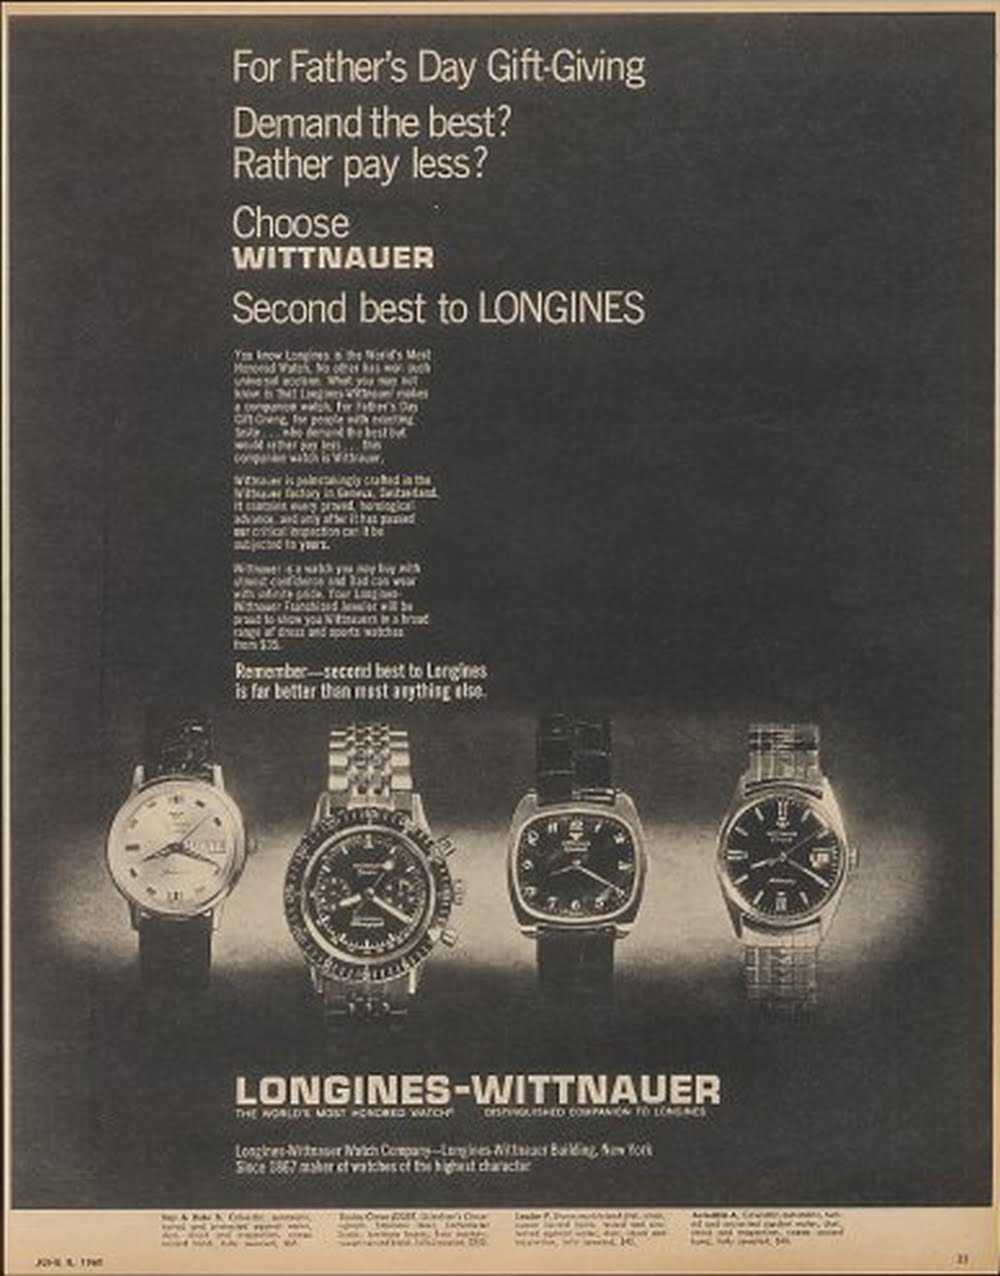 Wittnauer: Second Best to Longines